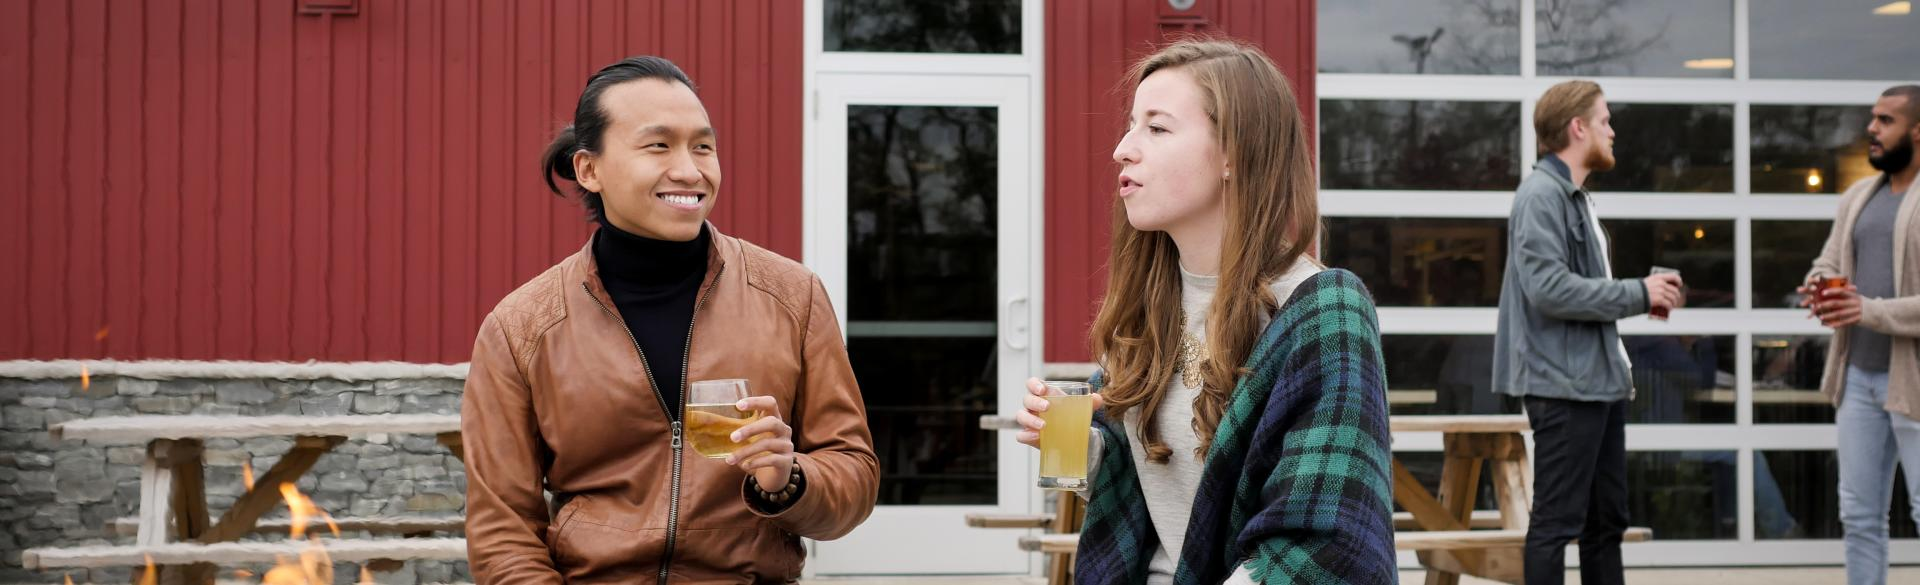 Couple at Vander Mill patio